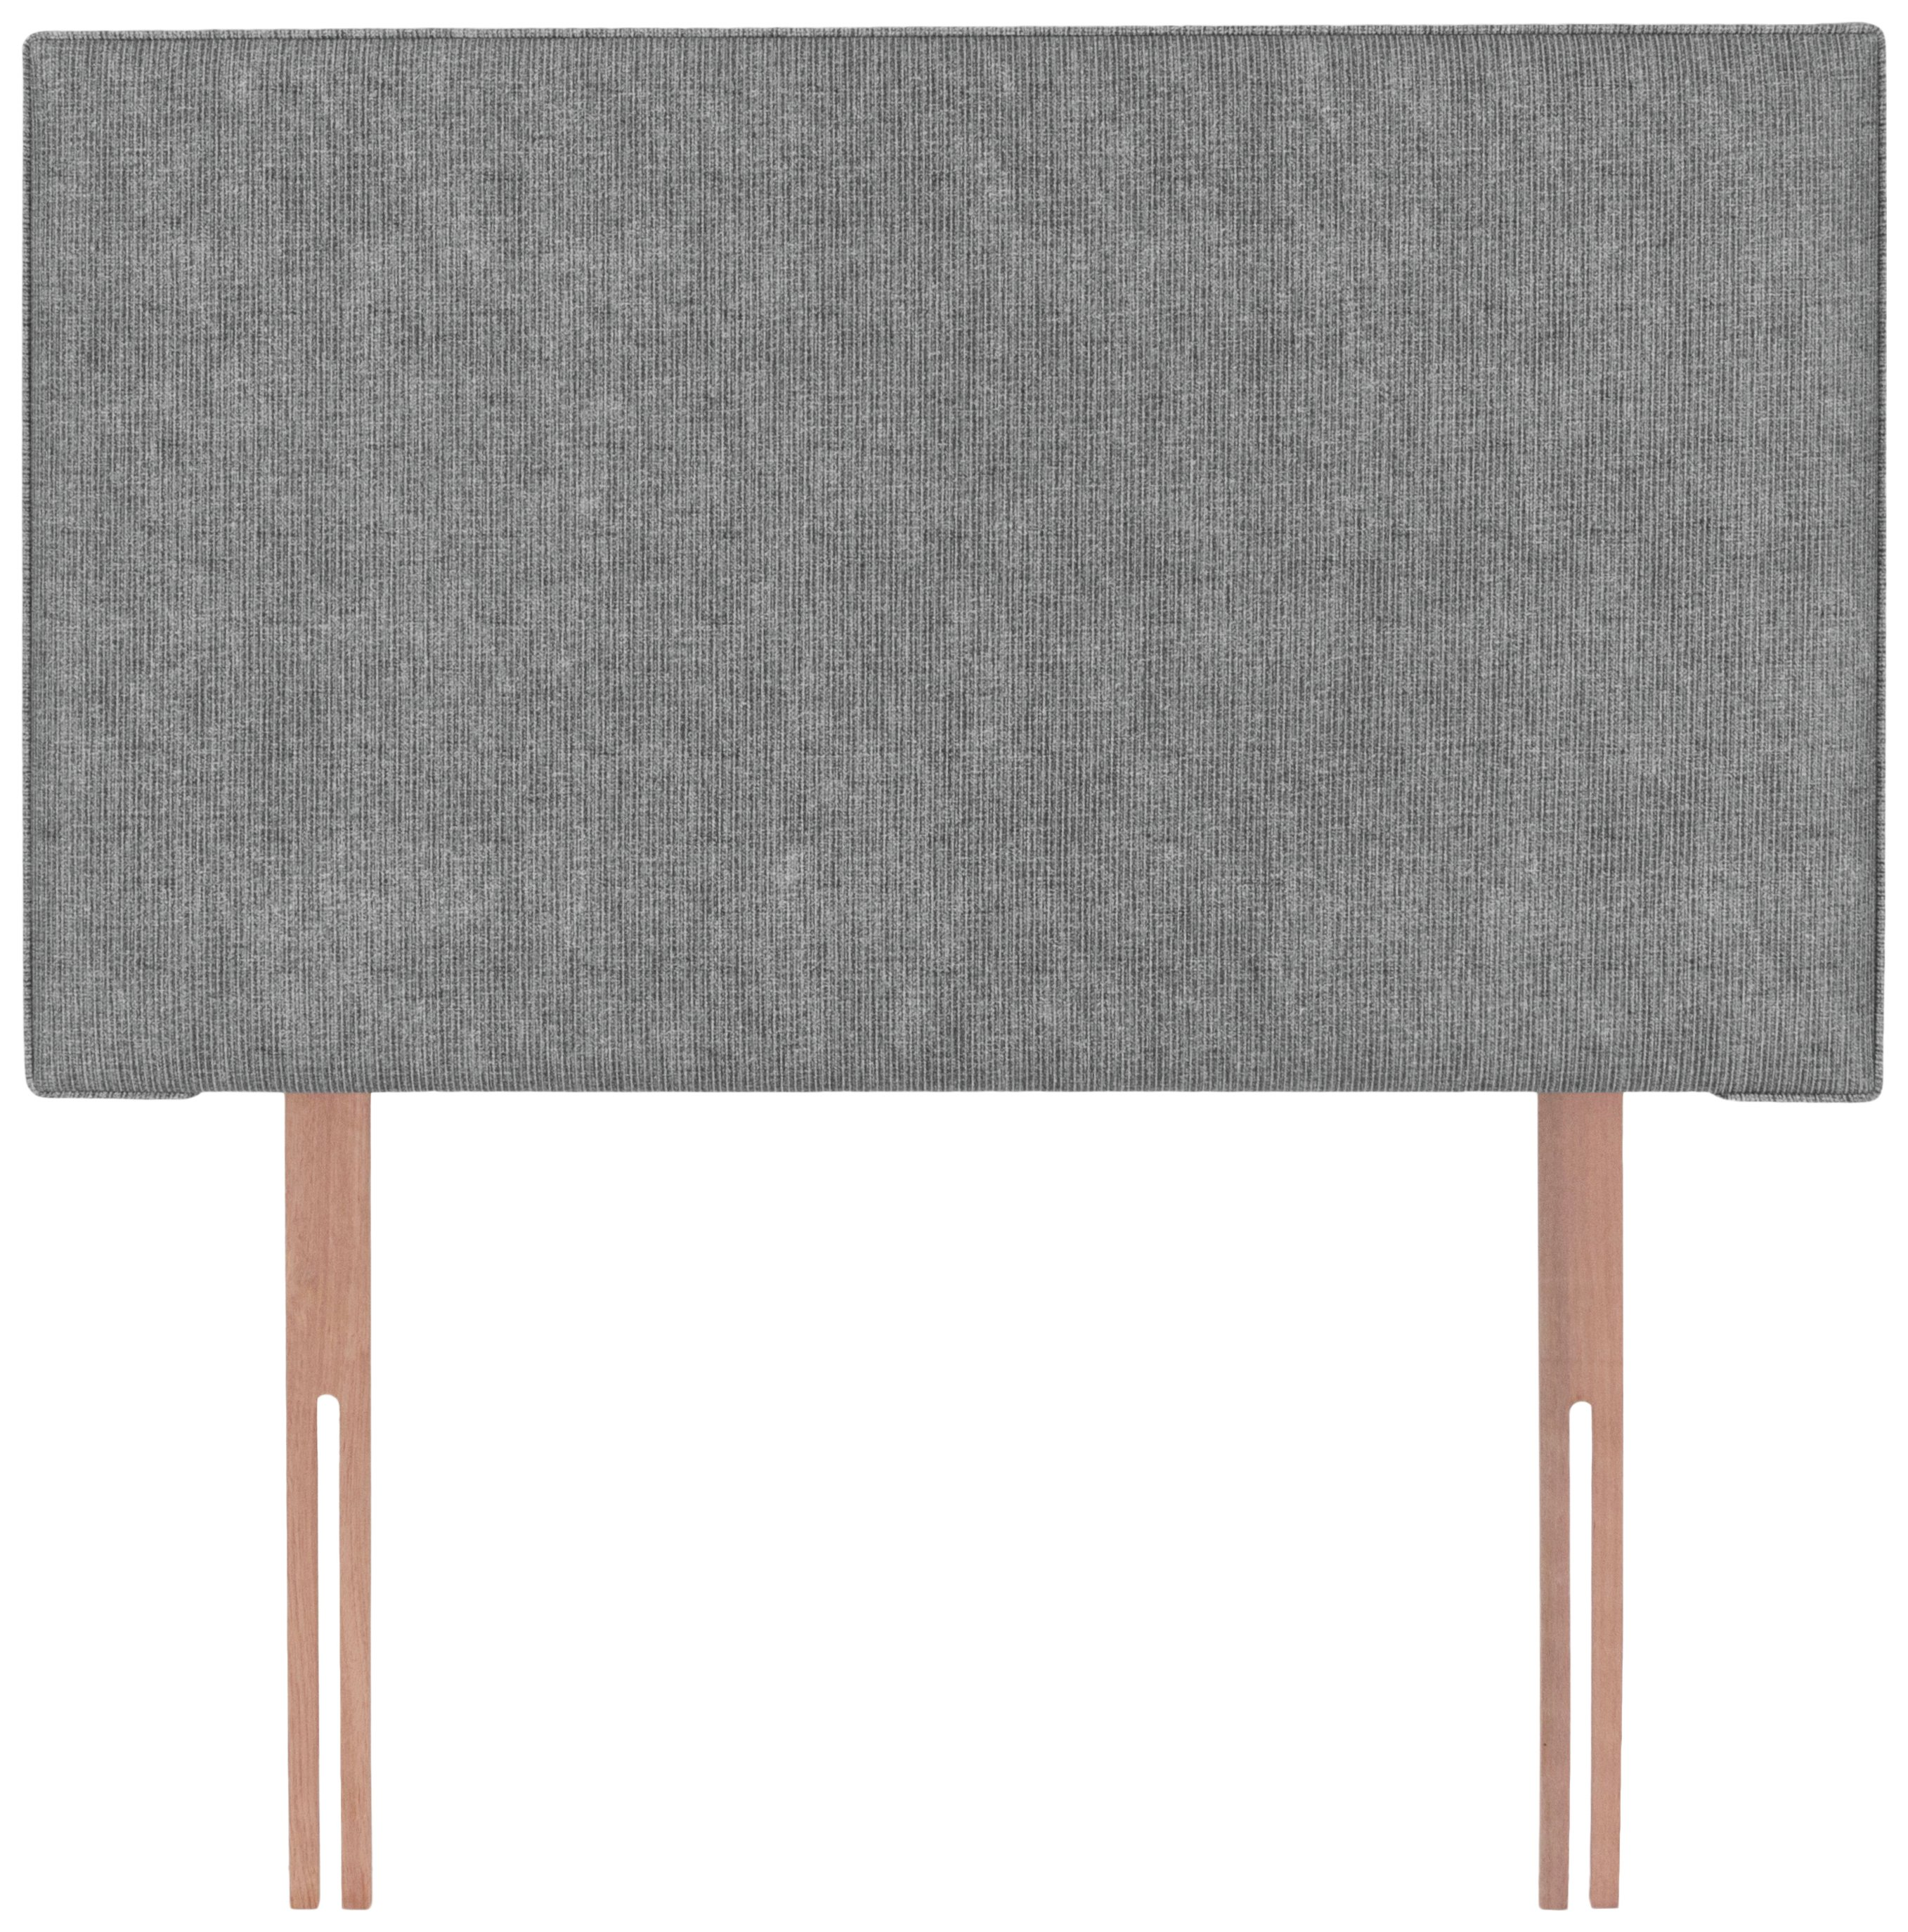 Airsprung Penrose Single Headboard - Grey